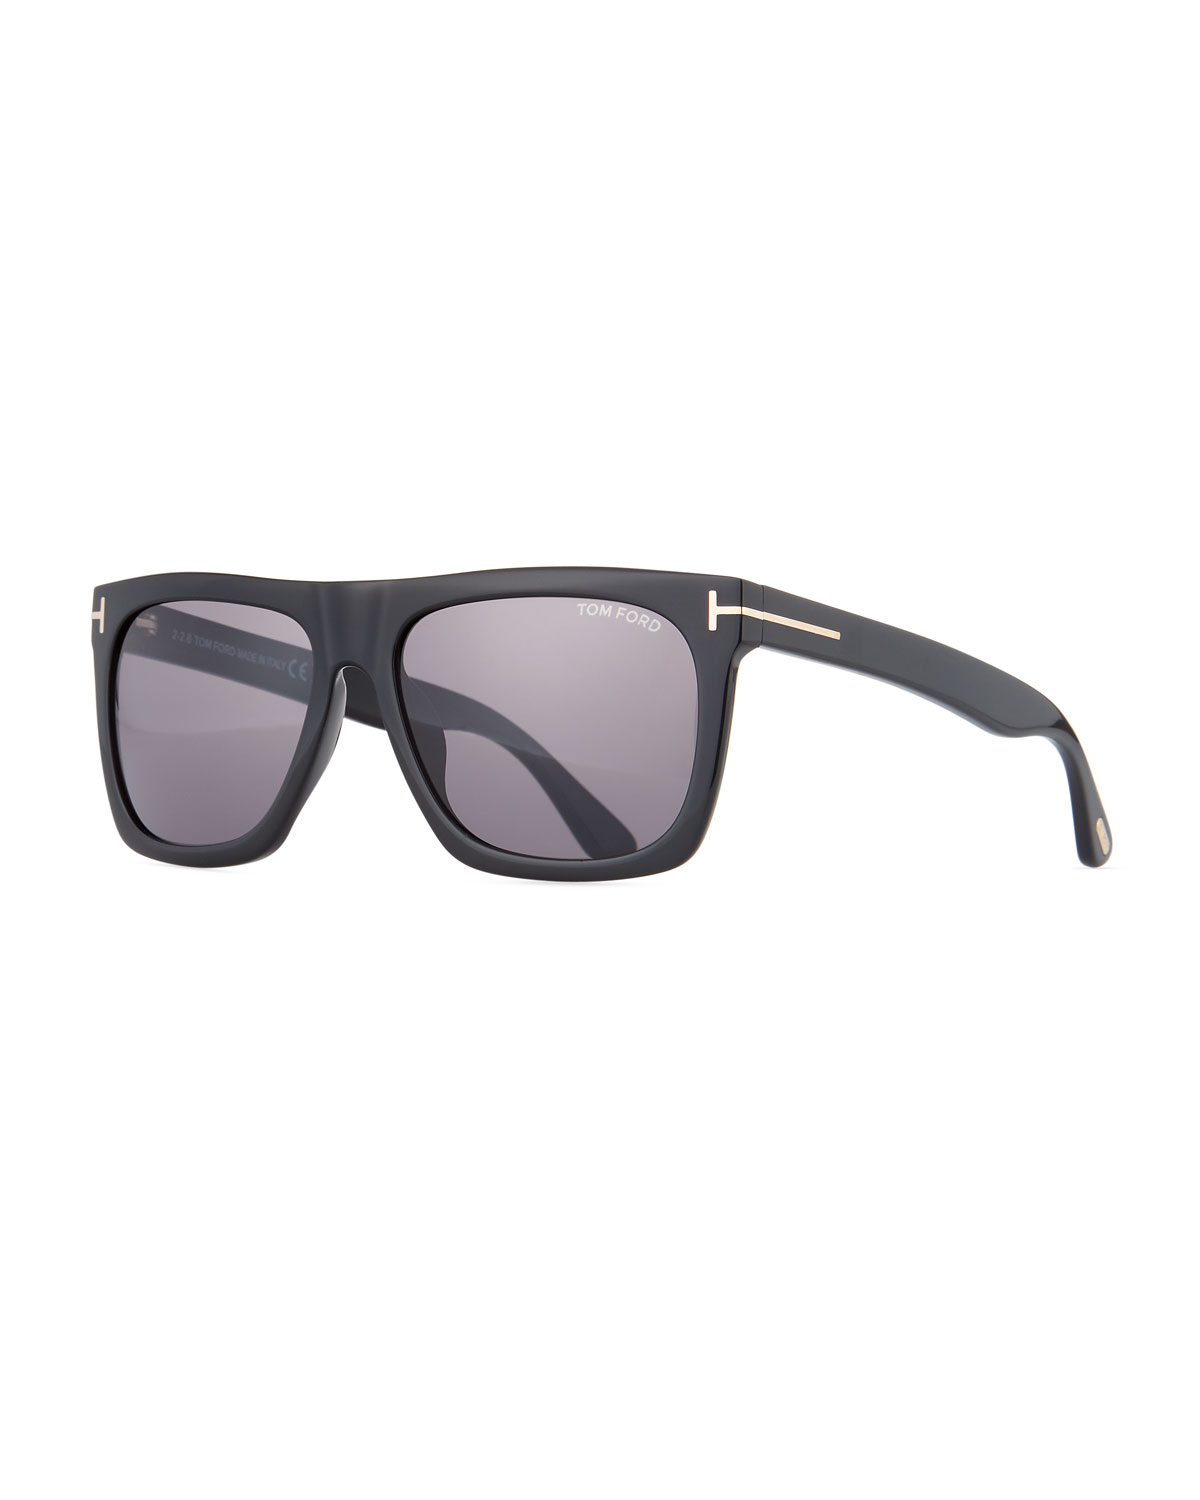 f46206d68b TOM FORD Morgan Thick Square Acetate Sunglasses